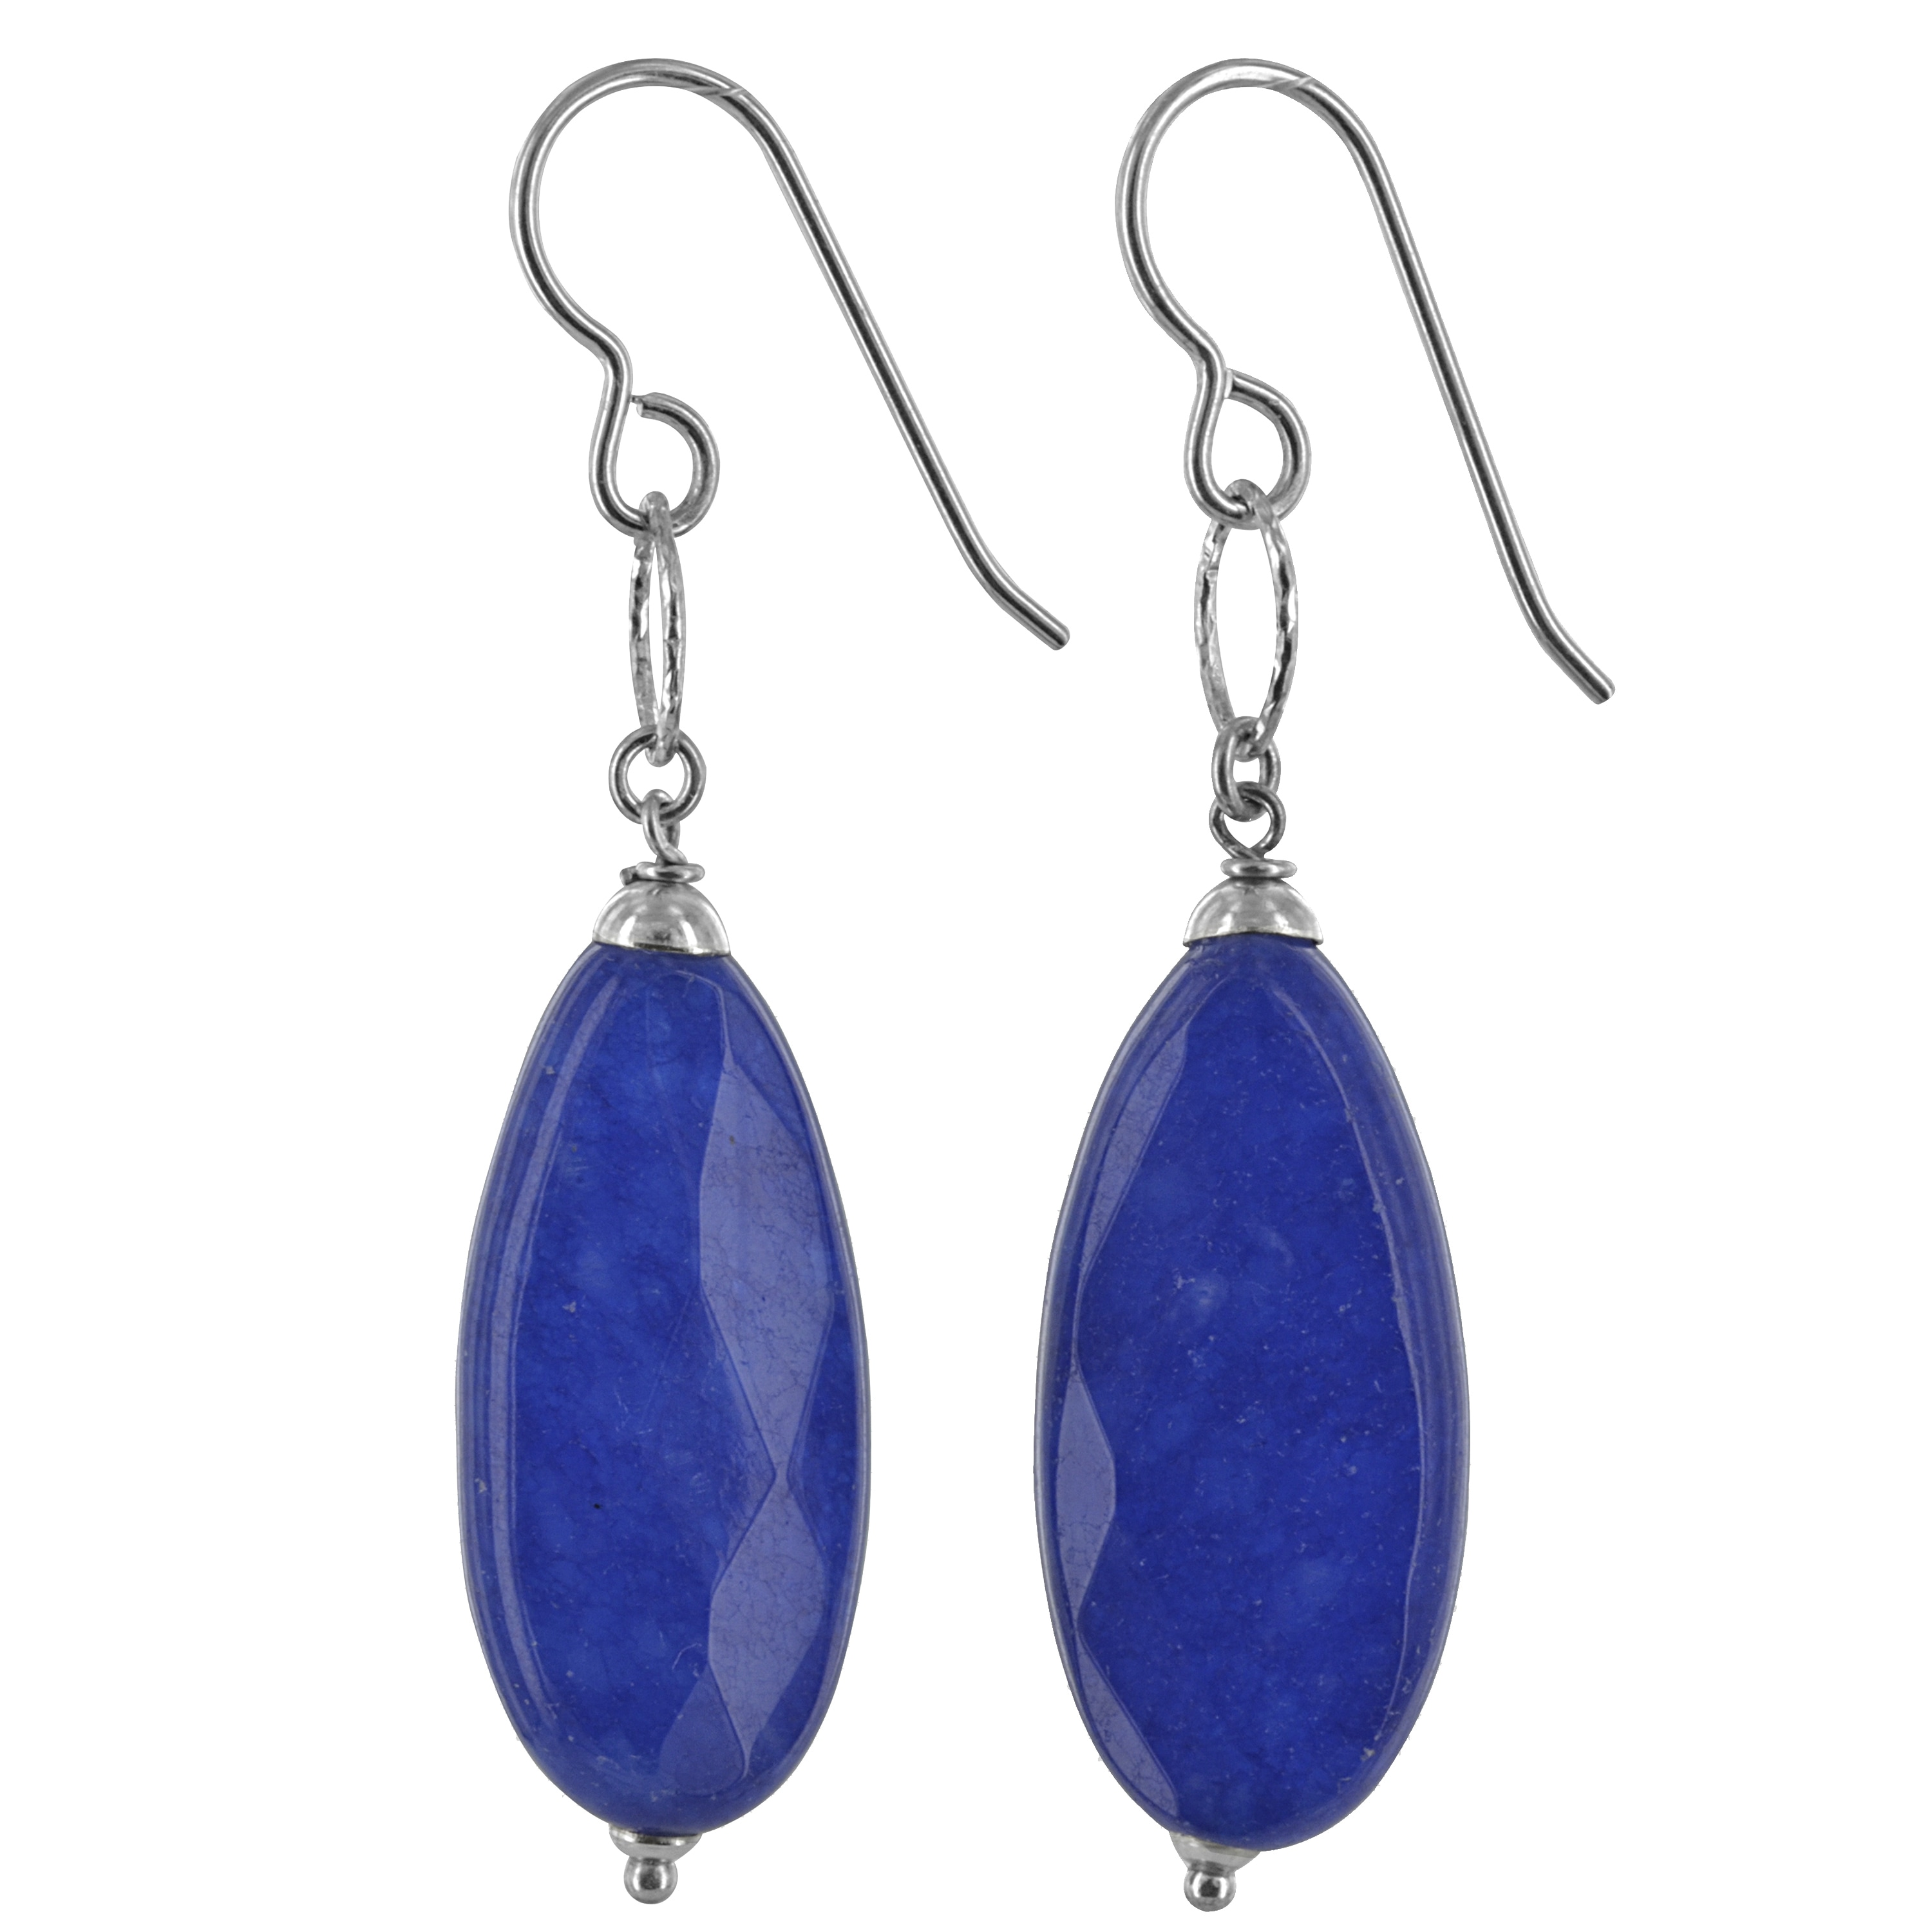 9b8d70bcc Shop Navy Blue Jade Gemstone Sterling Silver Handmade Earrings. Ashanti  Jewels - On Sale - Free Shipping On Orders Over $45 - Overstock.com -  10618226